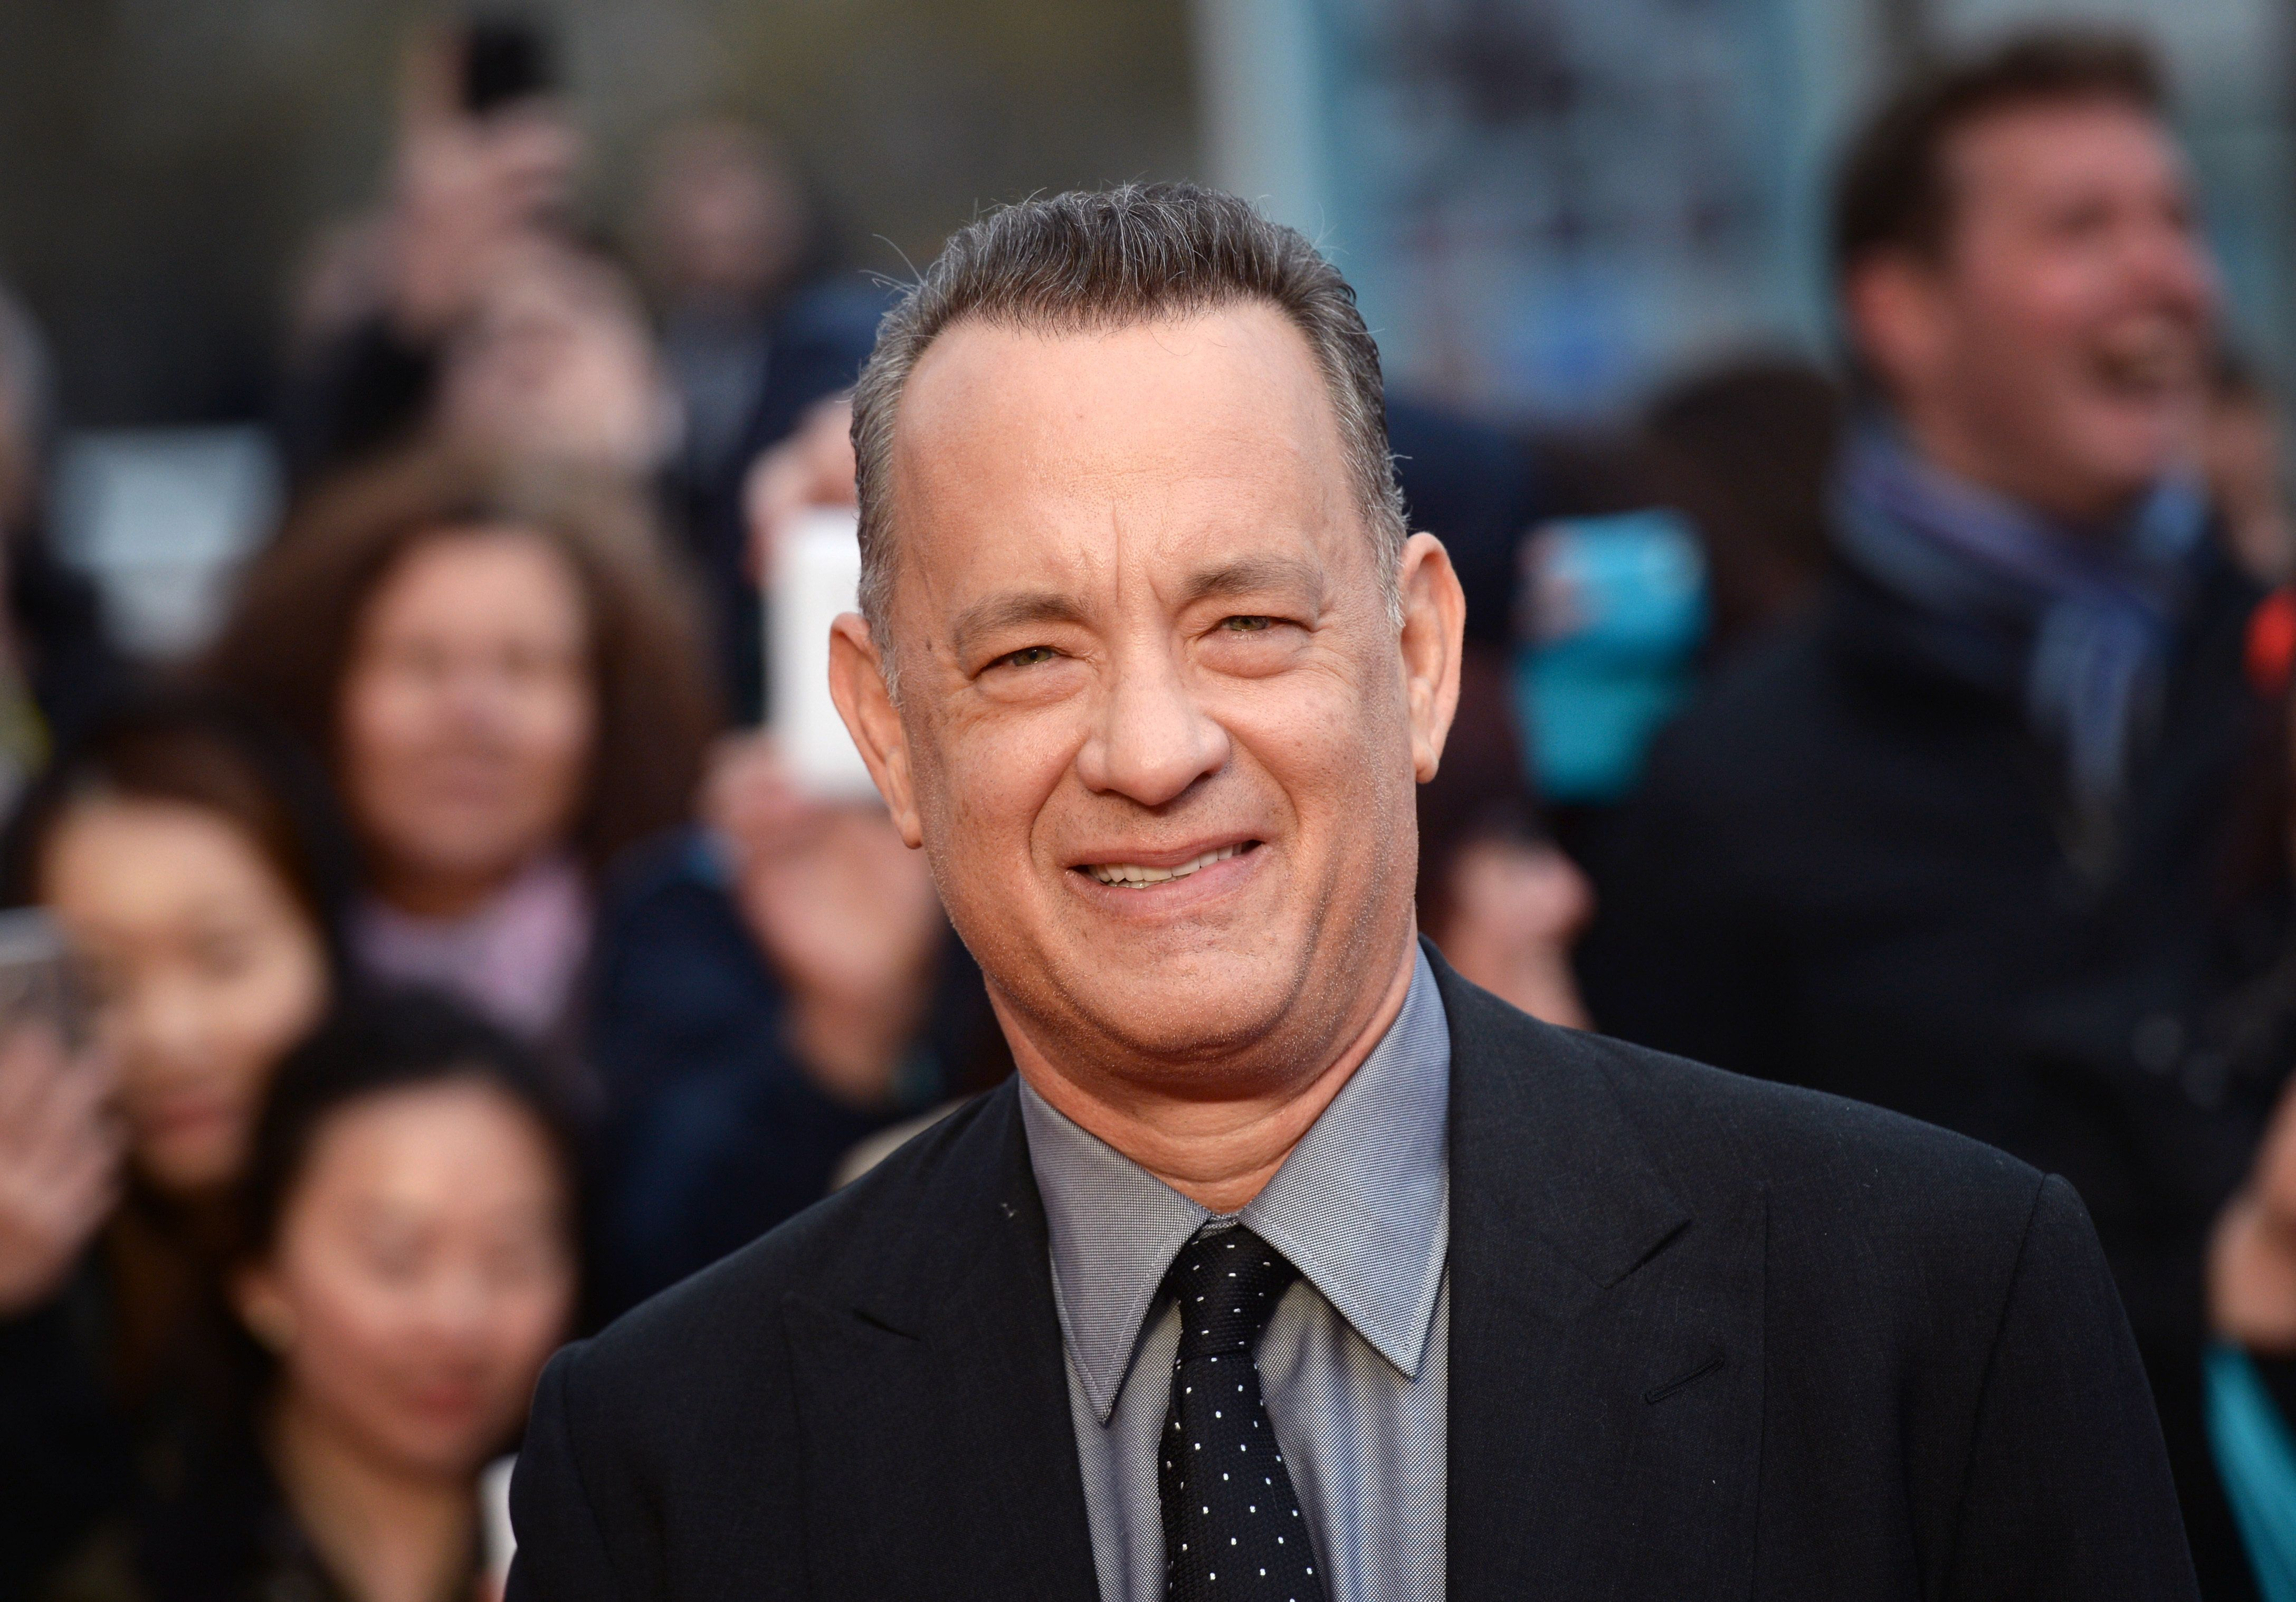 Tom Hanks Slams Harvey Weinstein As More Harassment Accusations Are Made